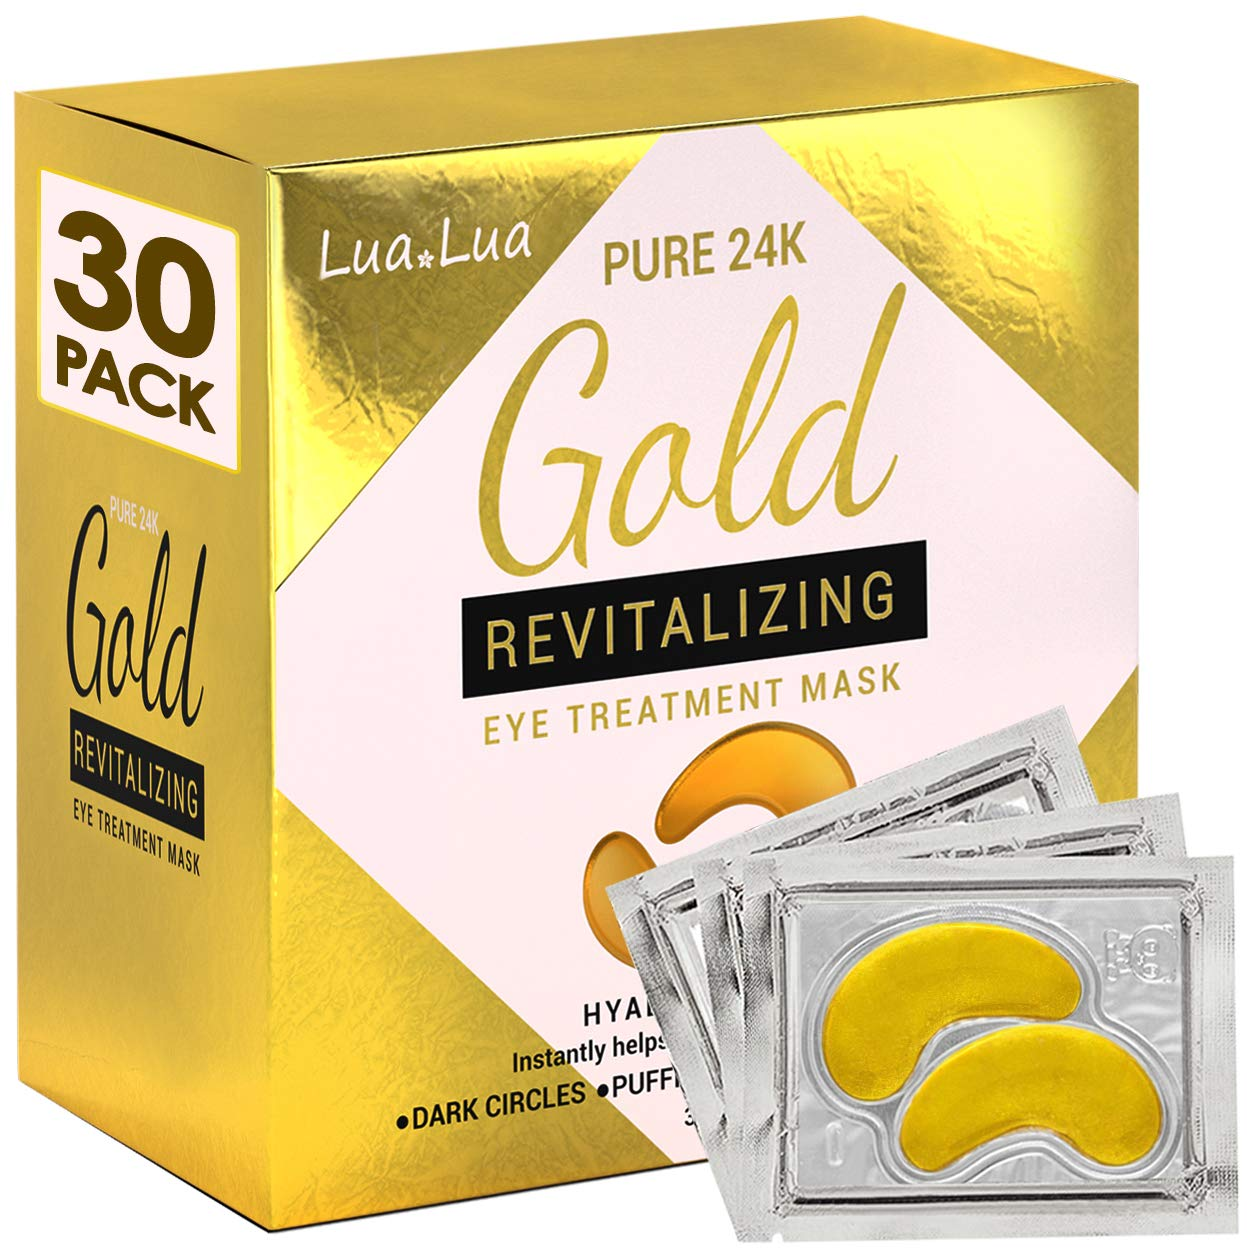 Cedlize Under Eye Collagen Patch, 24K GOLD ANTI-AGING MASK, Pads For Puffy Eyes & Bags, Dark Circles and Wrinkles, With Hyaluronic Acid, Hydrogel, Deep Moisturizing Improves Elasticity, 30 PAIRS: Beauty